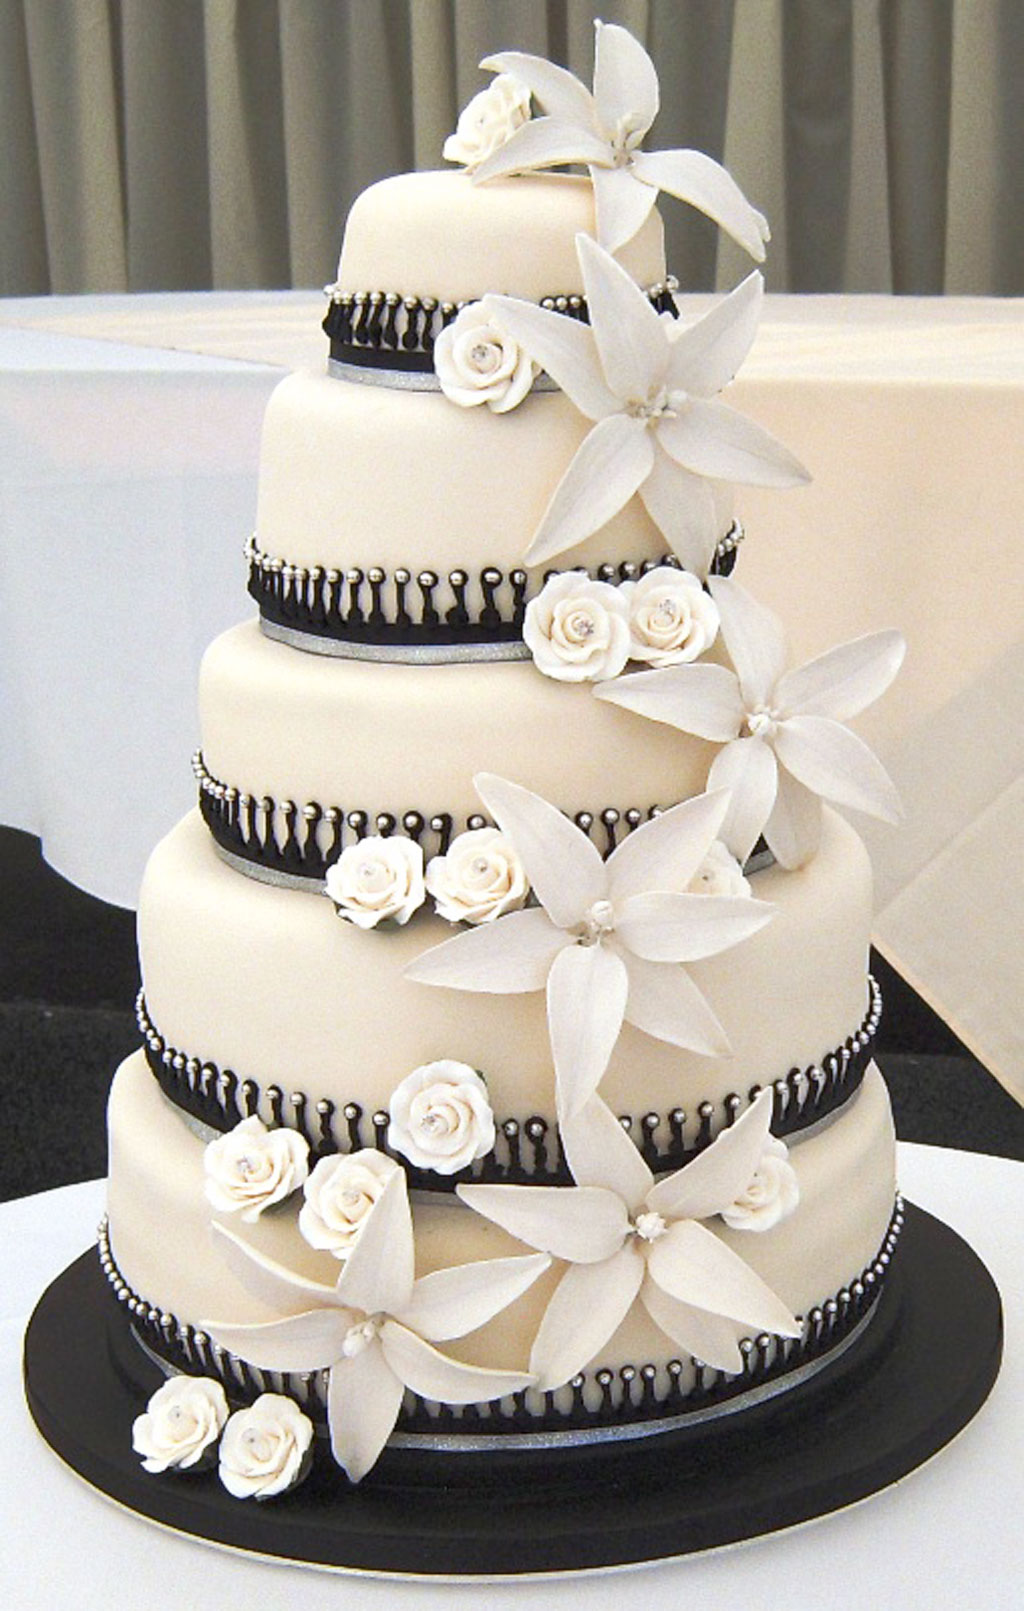 ideas wedding cakes design black white wedding cake designs wedding cake cake ideas 16302